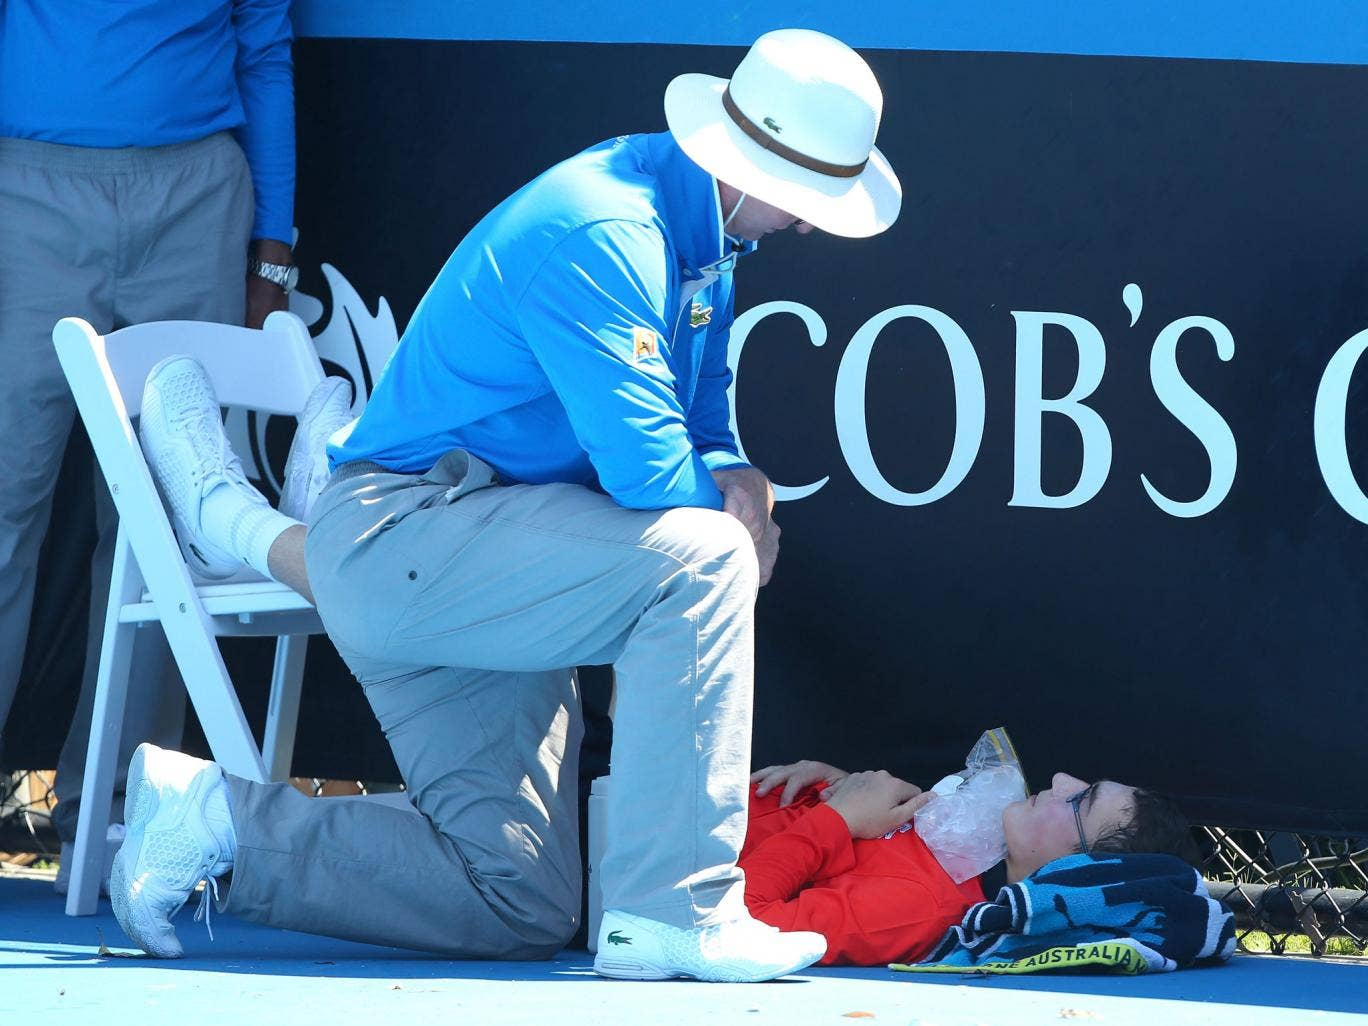 A ballboy faints in the heat, as Melbourne heads towards 43 degrees celsius during day two of the 2014 Australian Open at Melbourne Park